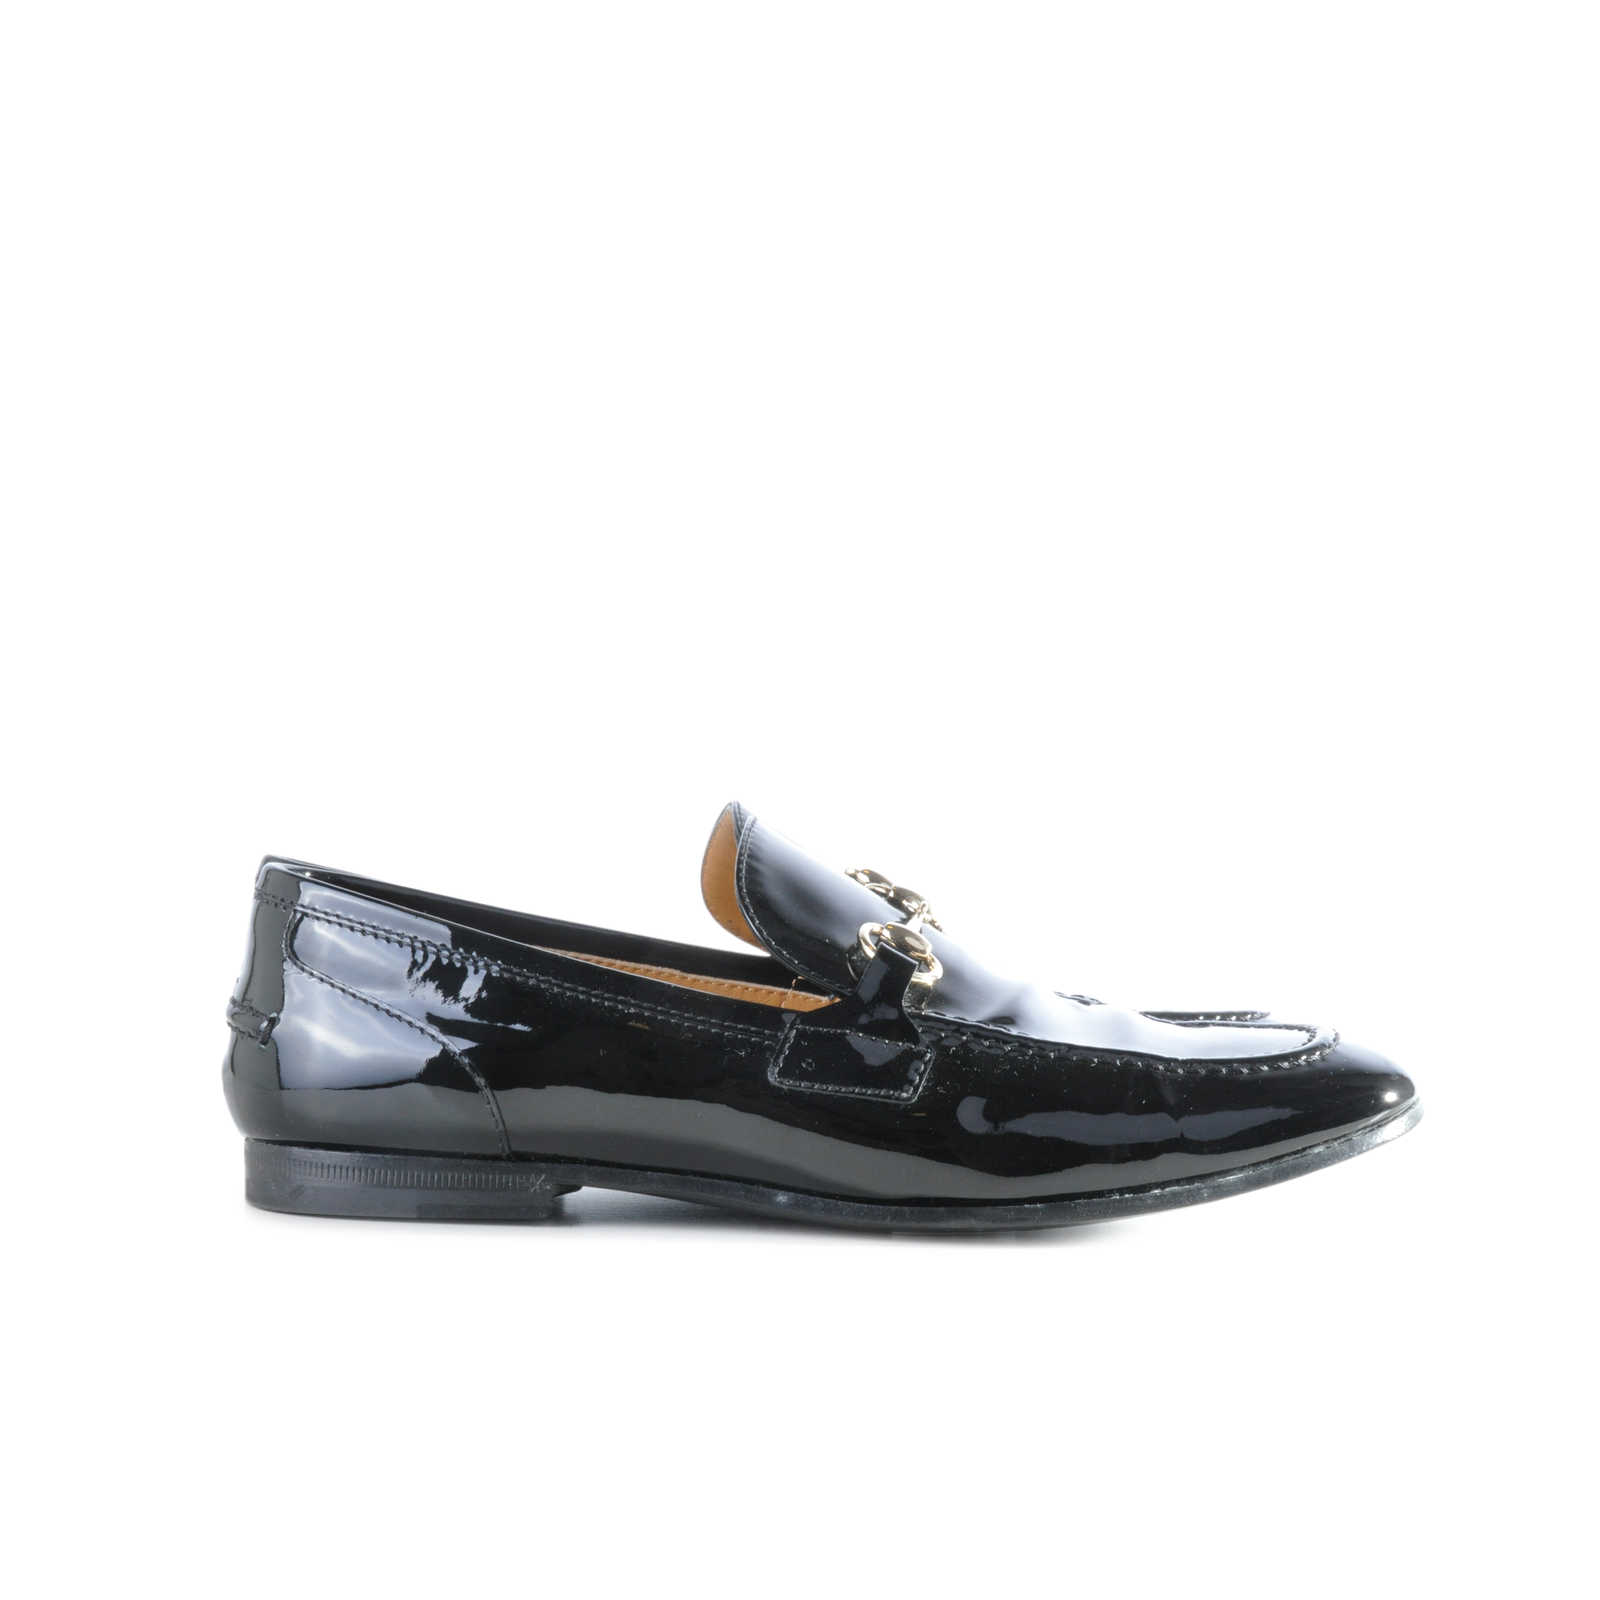 7bf48651904 ... Authentic Second Hand Gucci Patent Horsebit Loafers (PSS-077-00019) -  Thumbnail ...